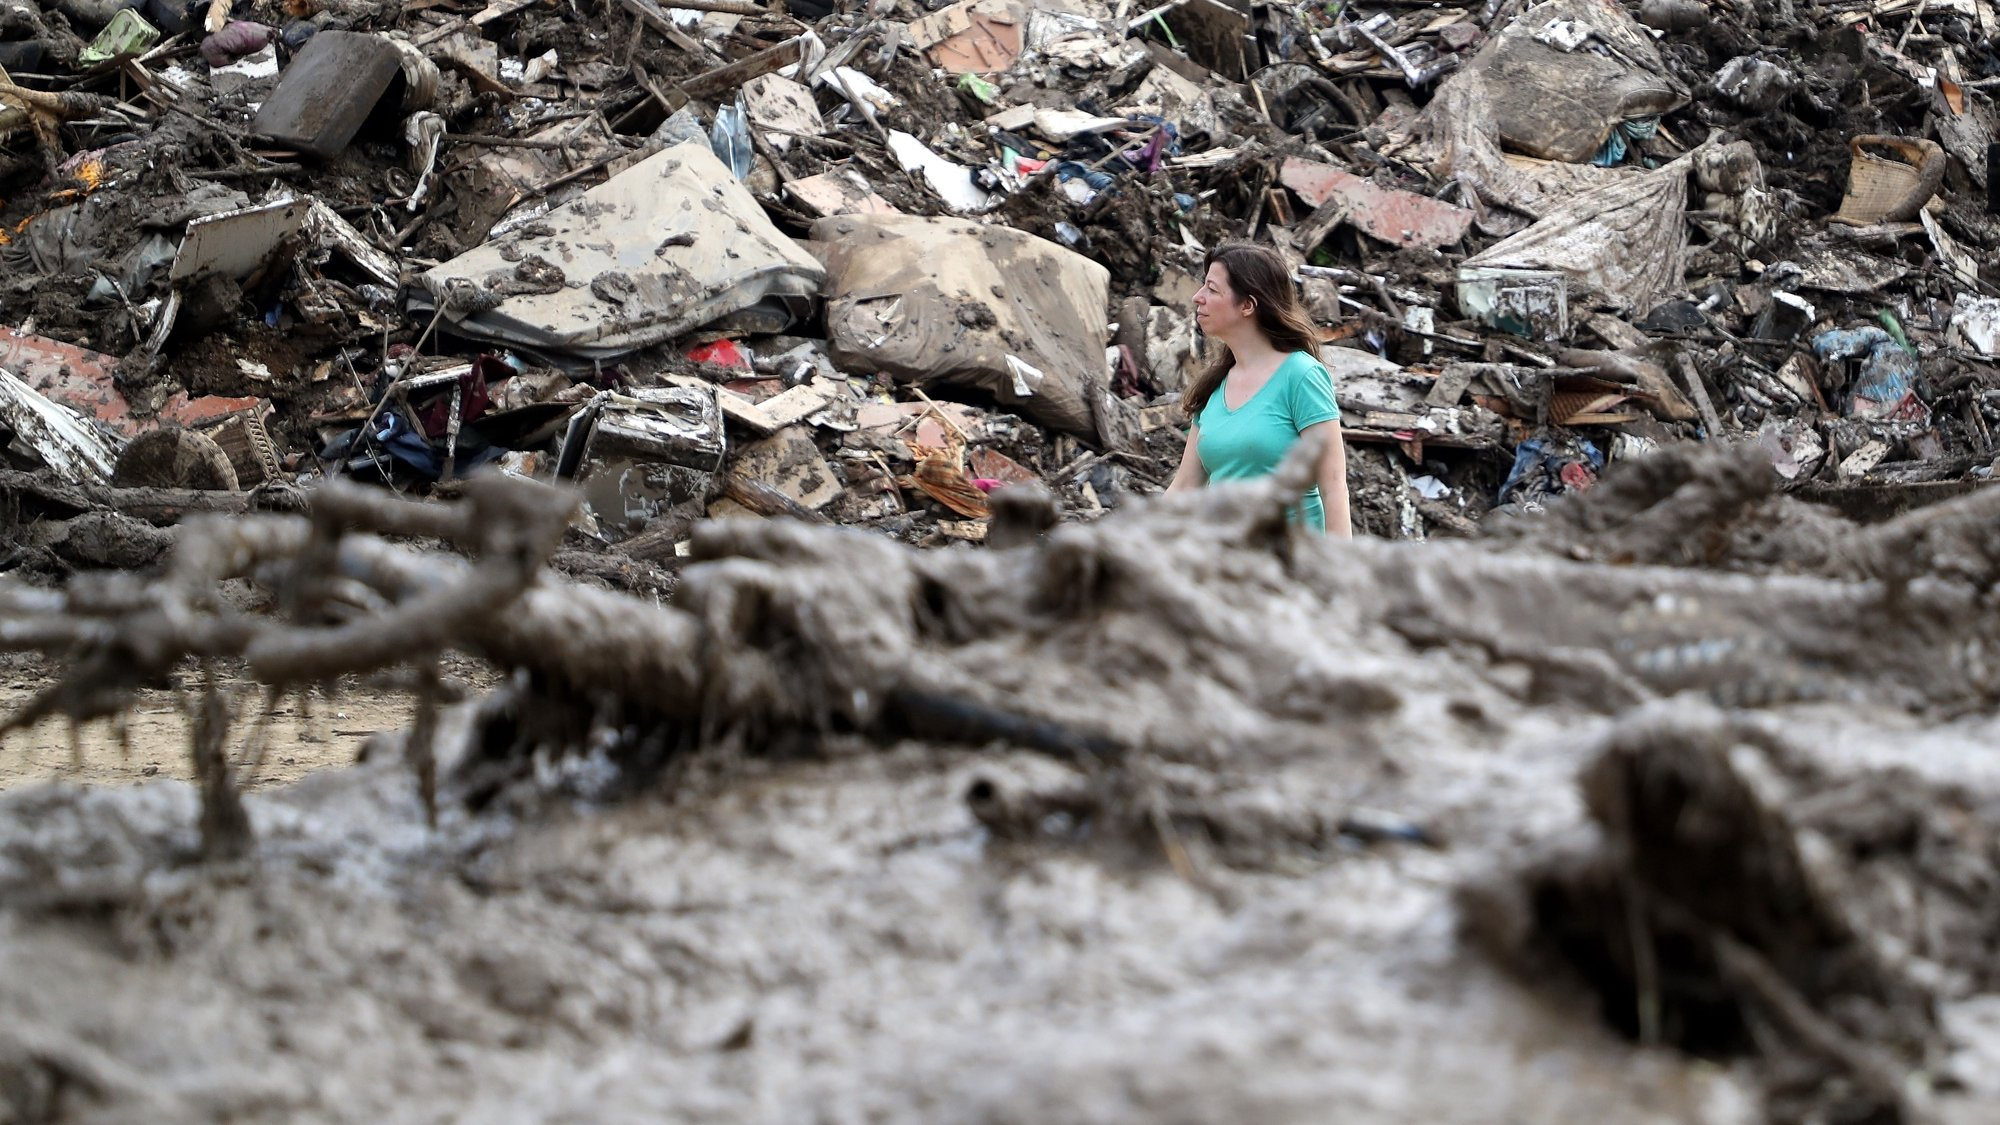 epa09353768 A person walks between the piled up rubbish after the flooding of the Ahr River, in Altenahr, Germany, 19 July 2021. Large parts of western Germany and central Europe were hit by flash floods in the night of 14 to 15 July, following days of continuous rain that destroyed buildings and swept away cars. The total number of victims in the flood disaster in western Germany rises to at least 164, with many hundreds still missing.  EPA/FRIEDEMANN VOGEL